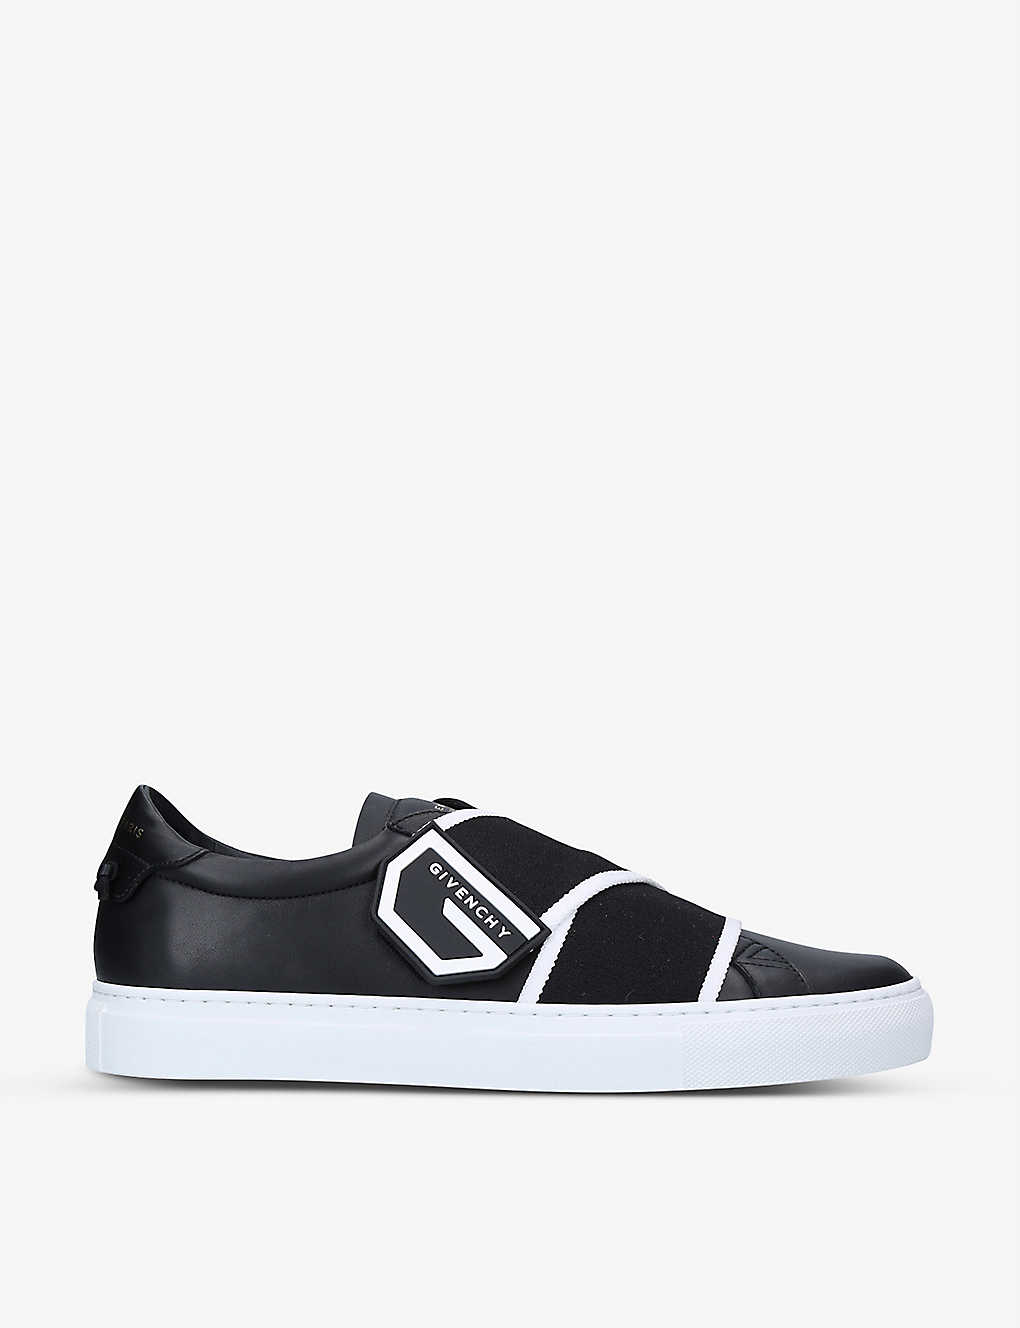 GIVENCHY: Knot logo-strap leather trainers